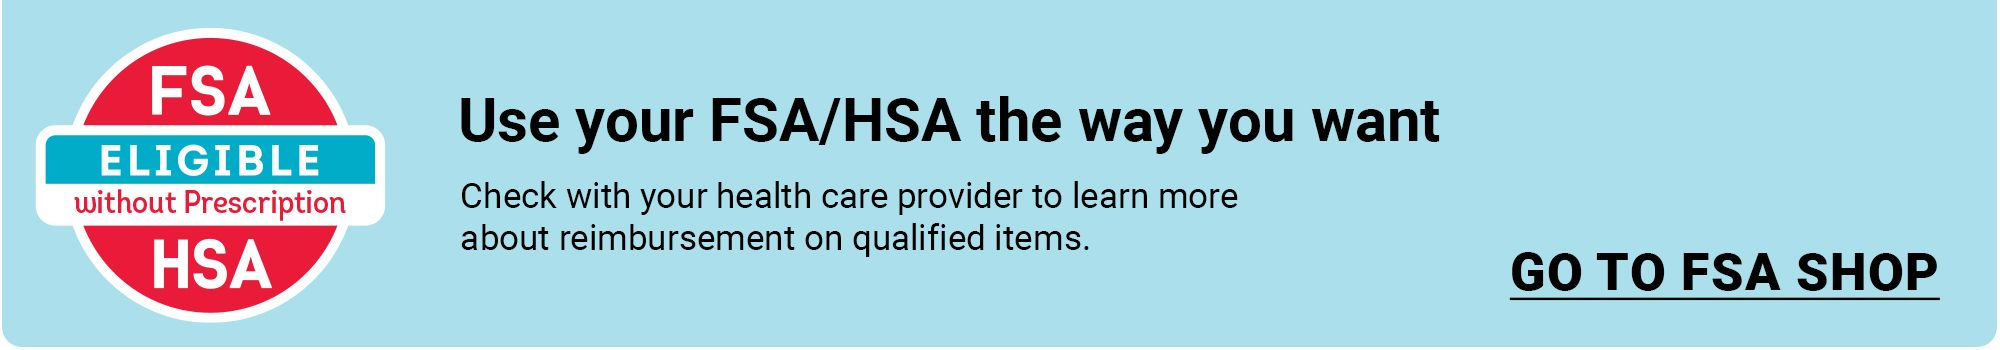 Use your FSA/HSA the way you want. Check with your health care provider to learen more about reimbursement on qualified items. Click to go to FSA Shop.